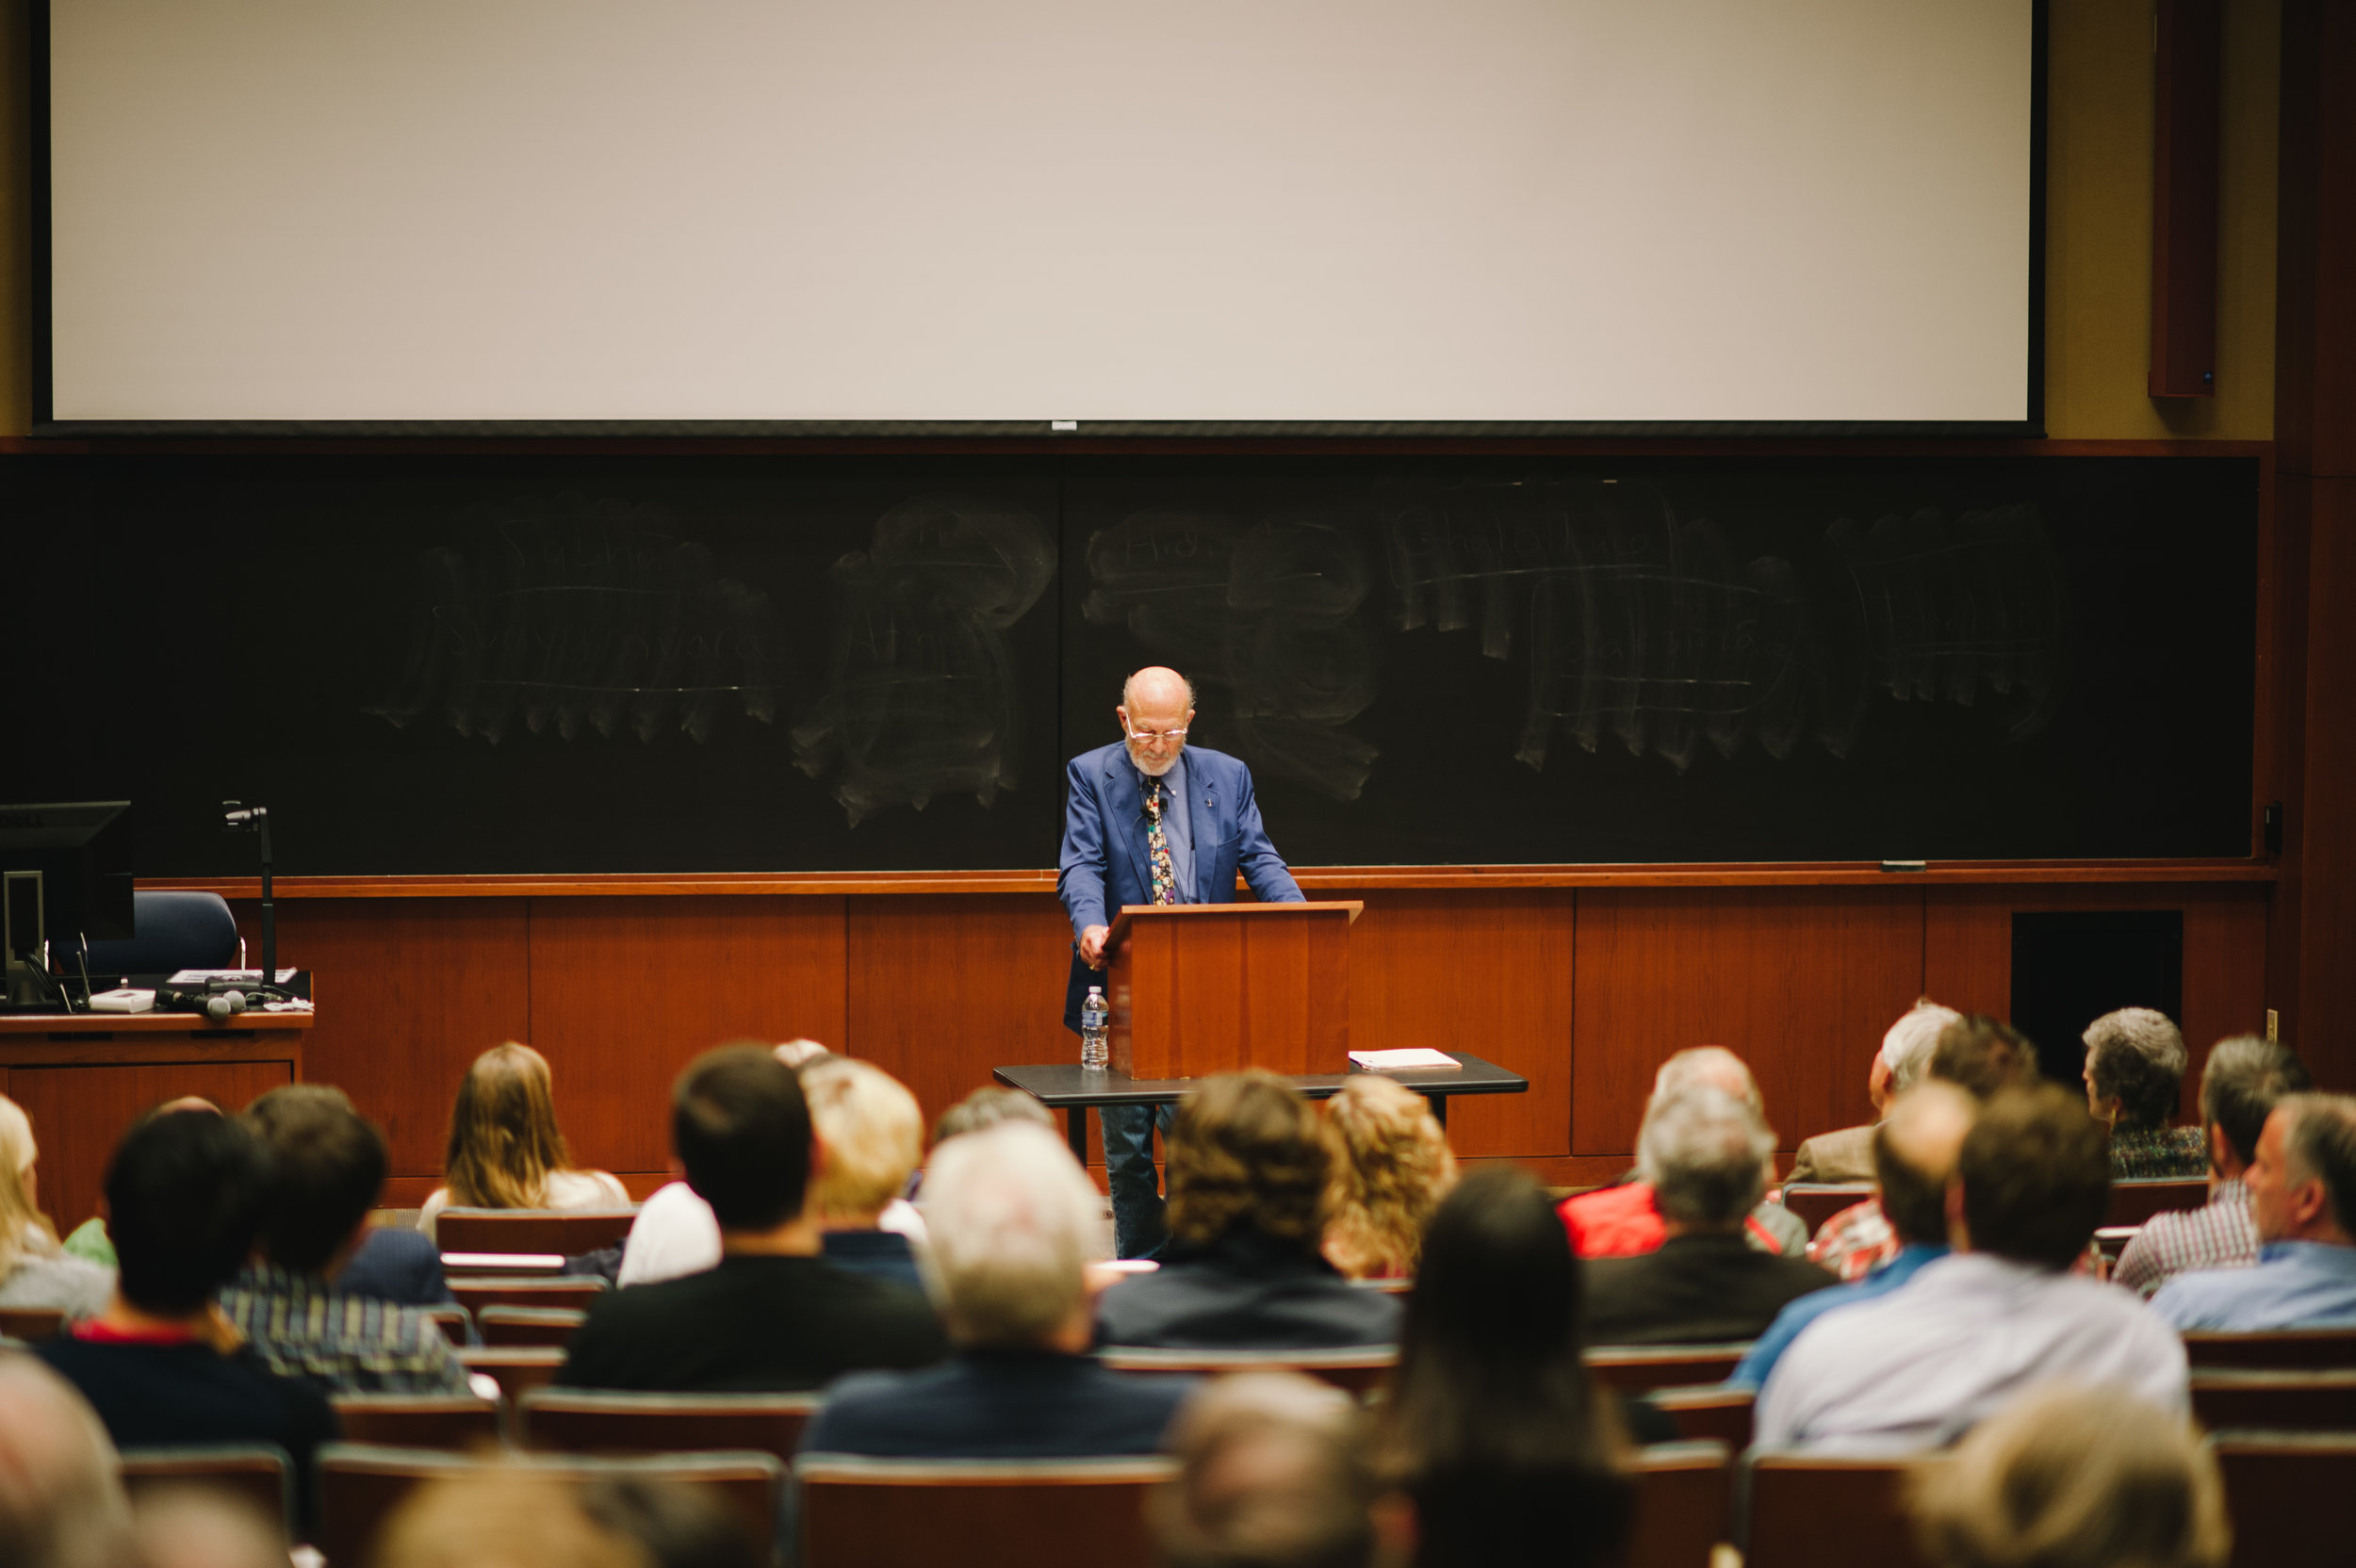 CappsLecture(2017)-7072.jpg